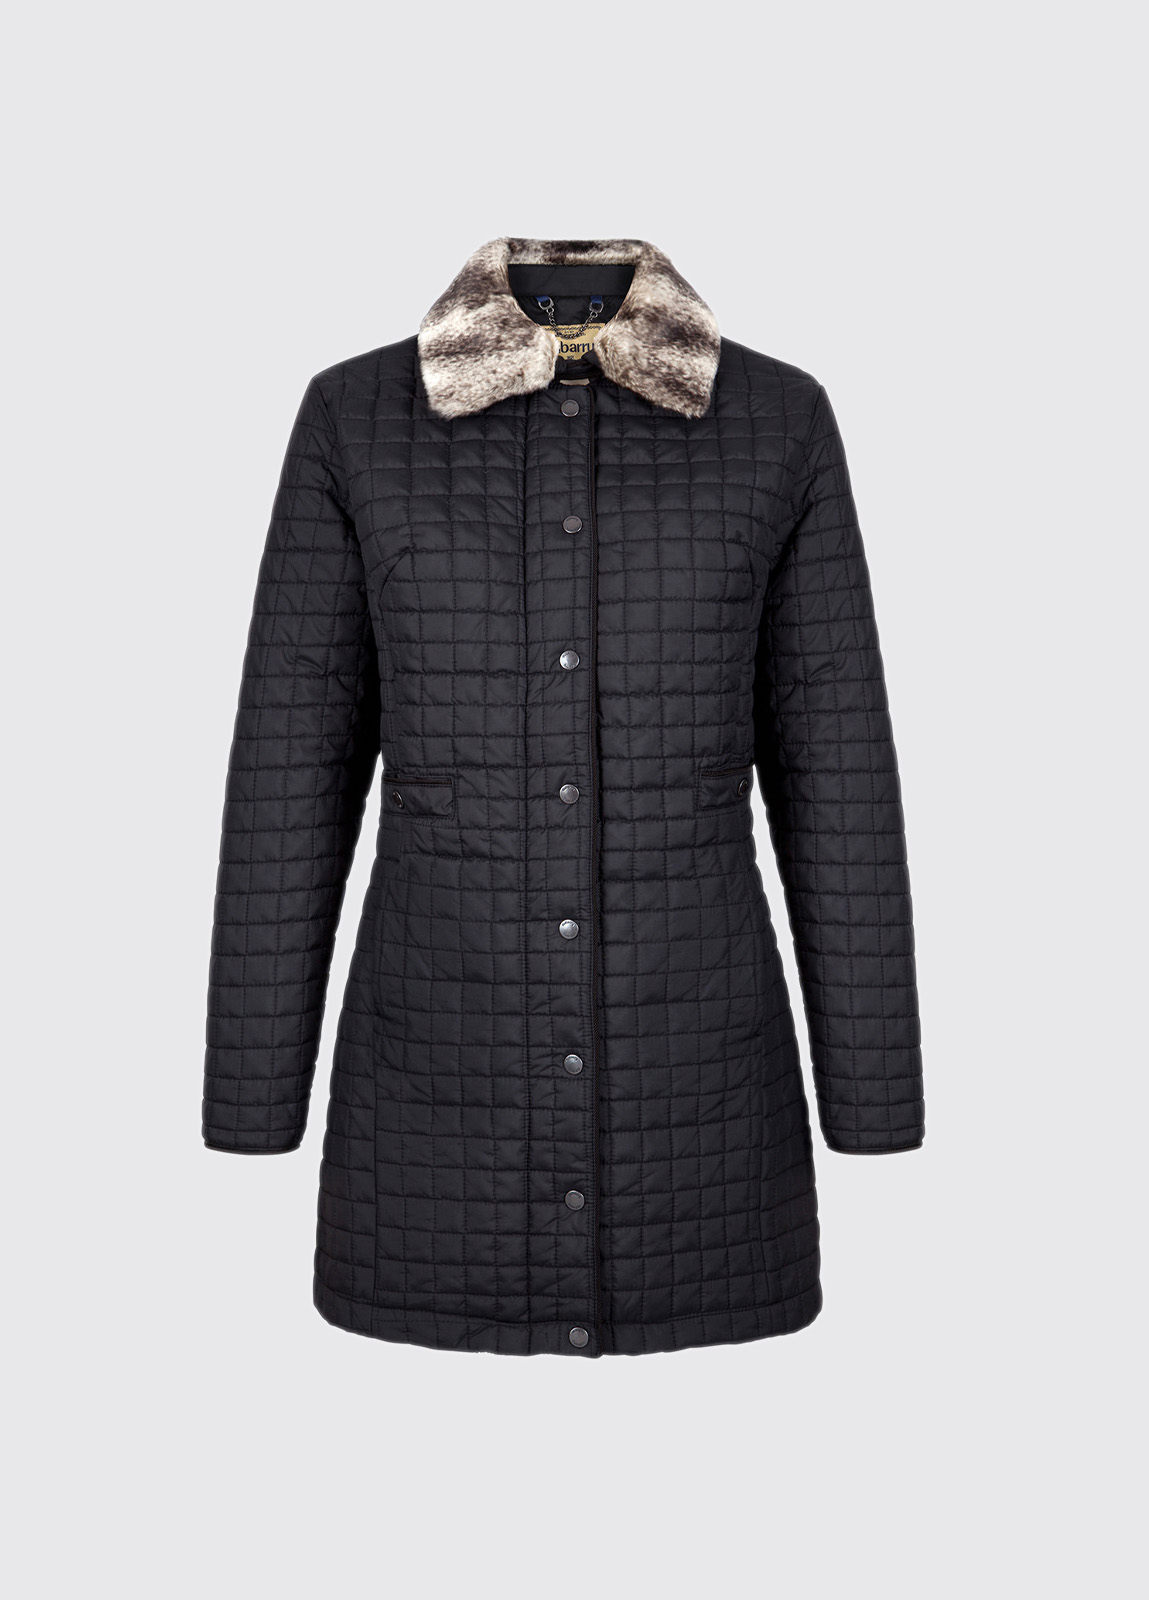 Abbey Women's Quilted Jacket - Black